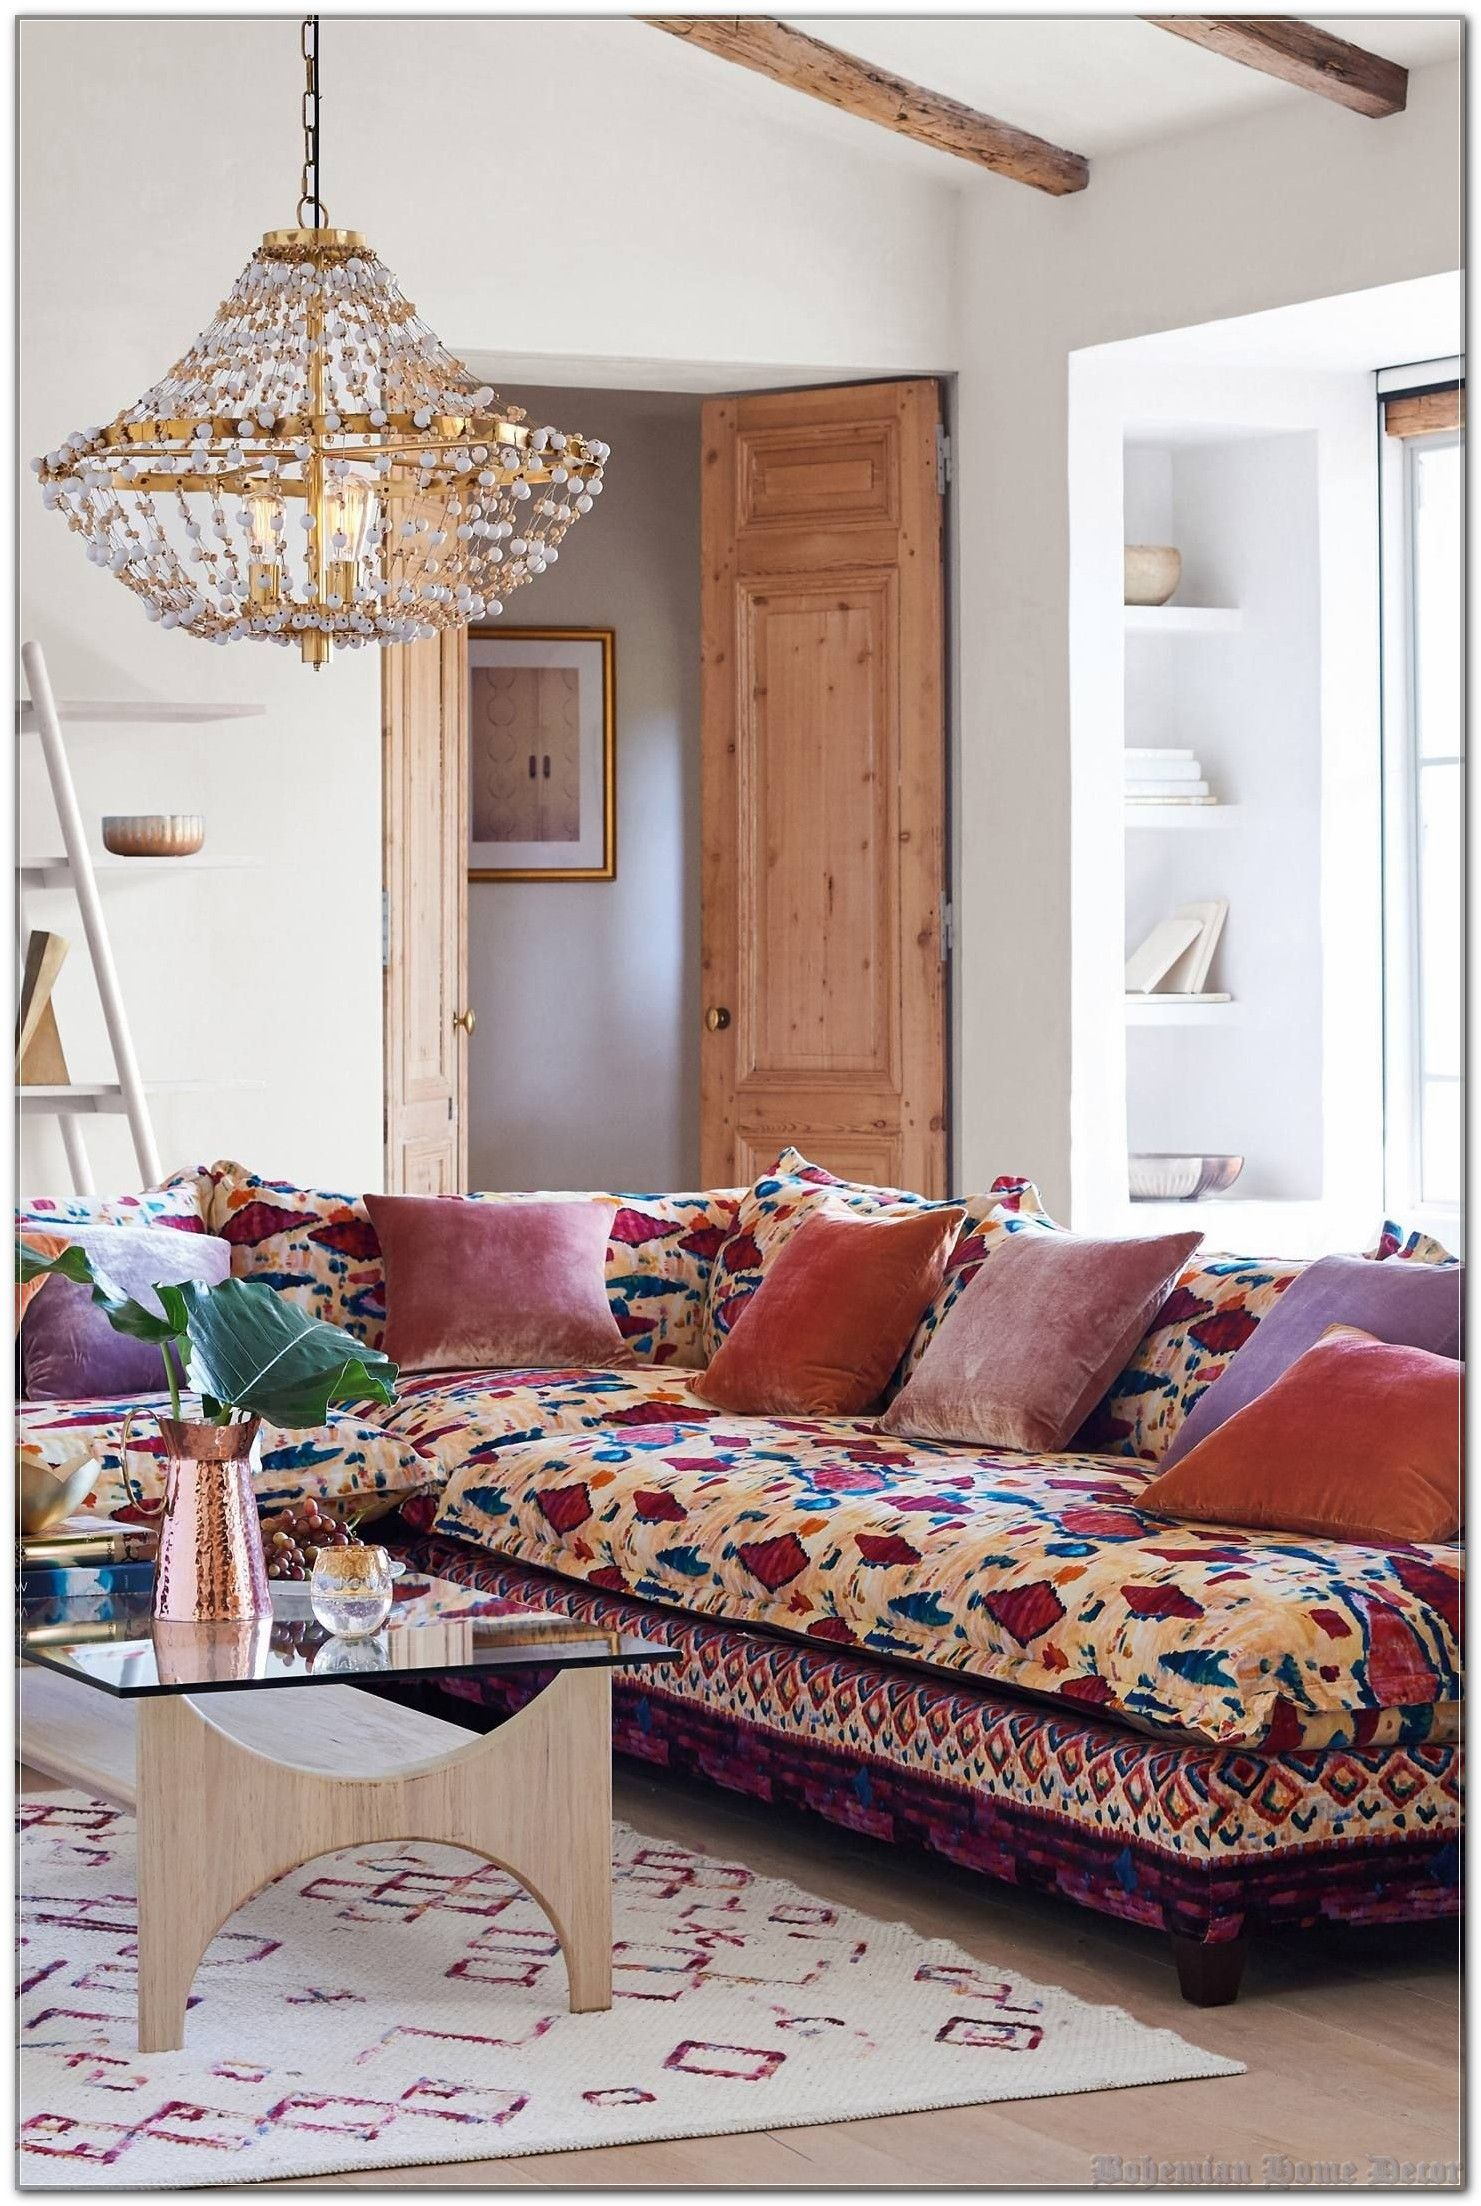 Are You Struggling With Bohemian Home Decor? Let's Chat